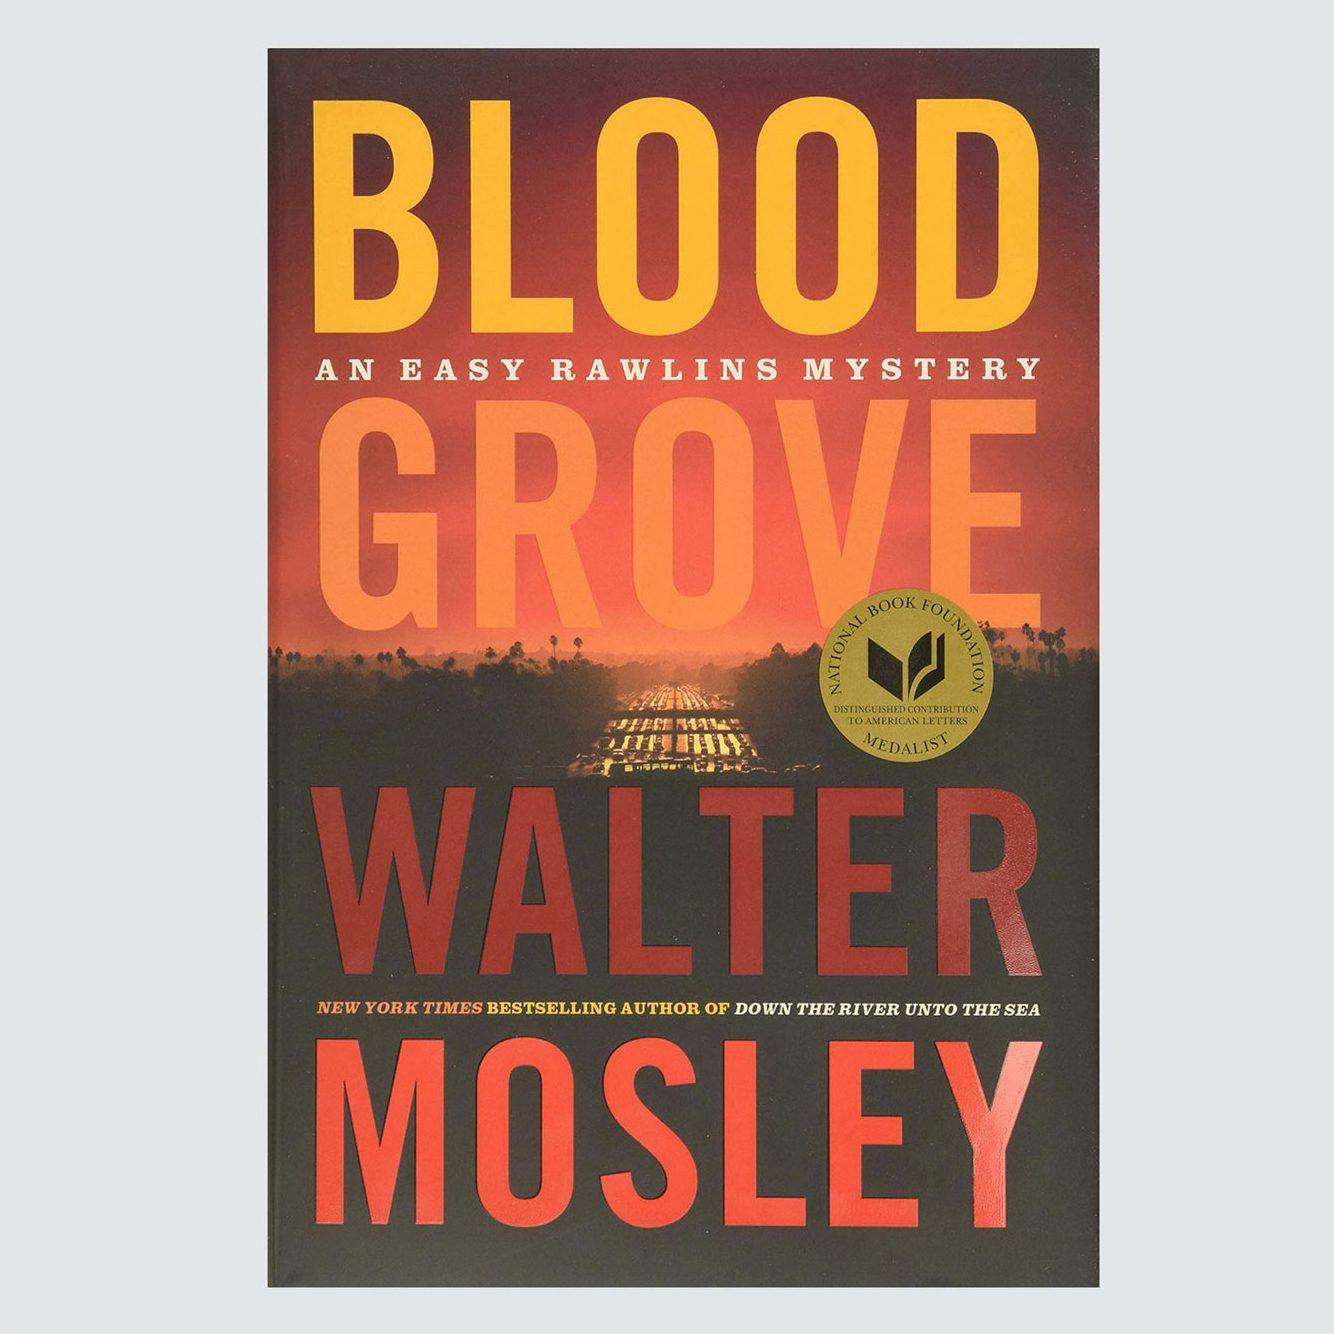 Blood Grove by Walter Mosely